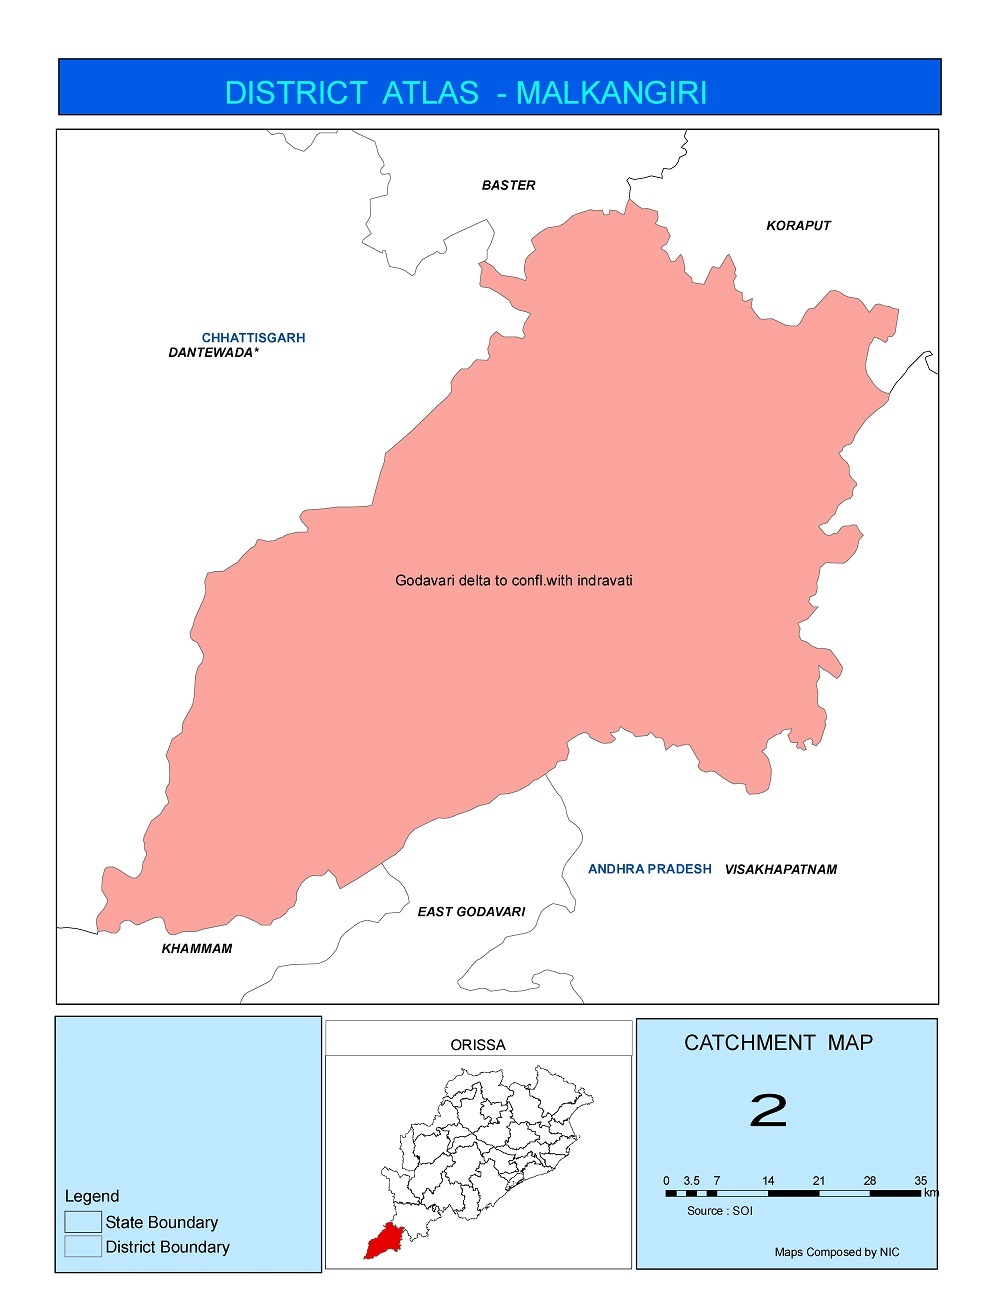 Catchment Map of Malkangiri